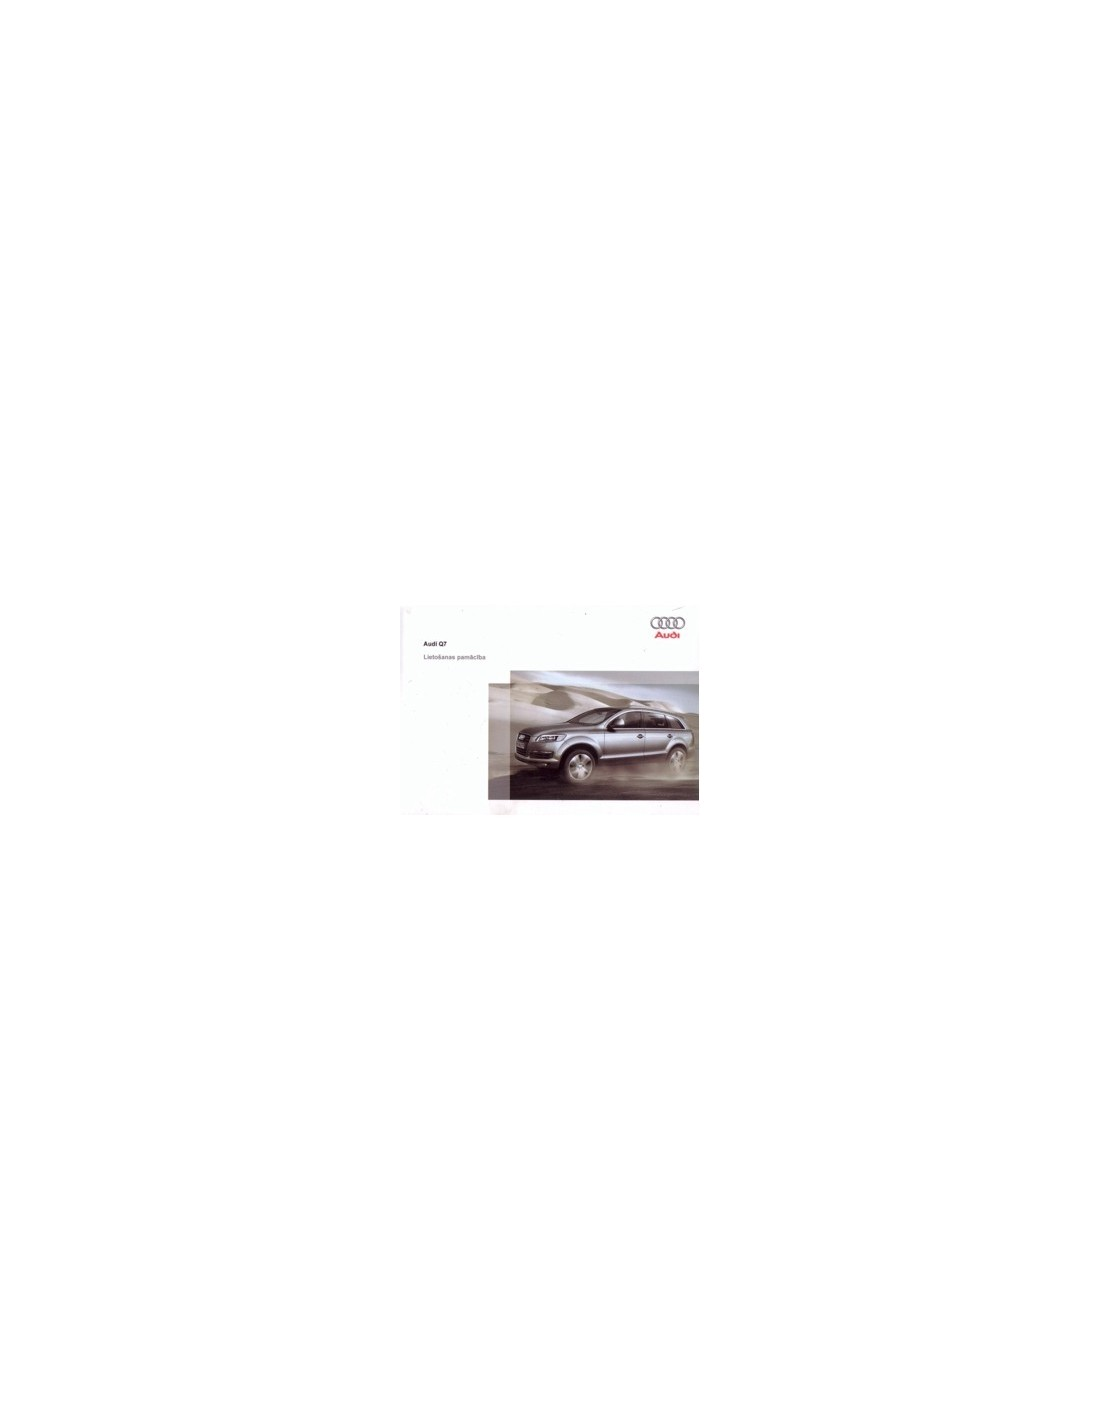 Audi q7 2007 repair manual servicemanualspdf.